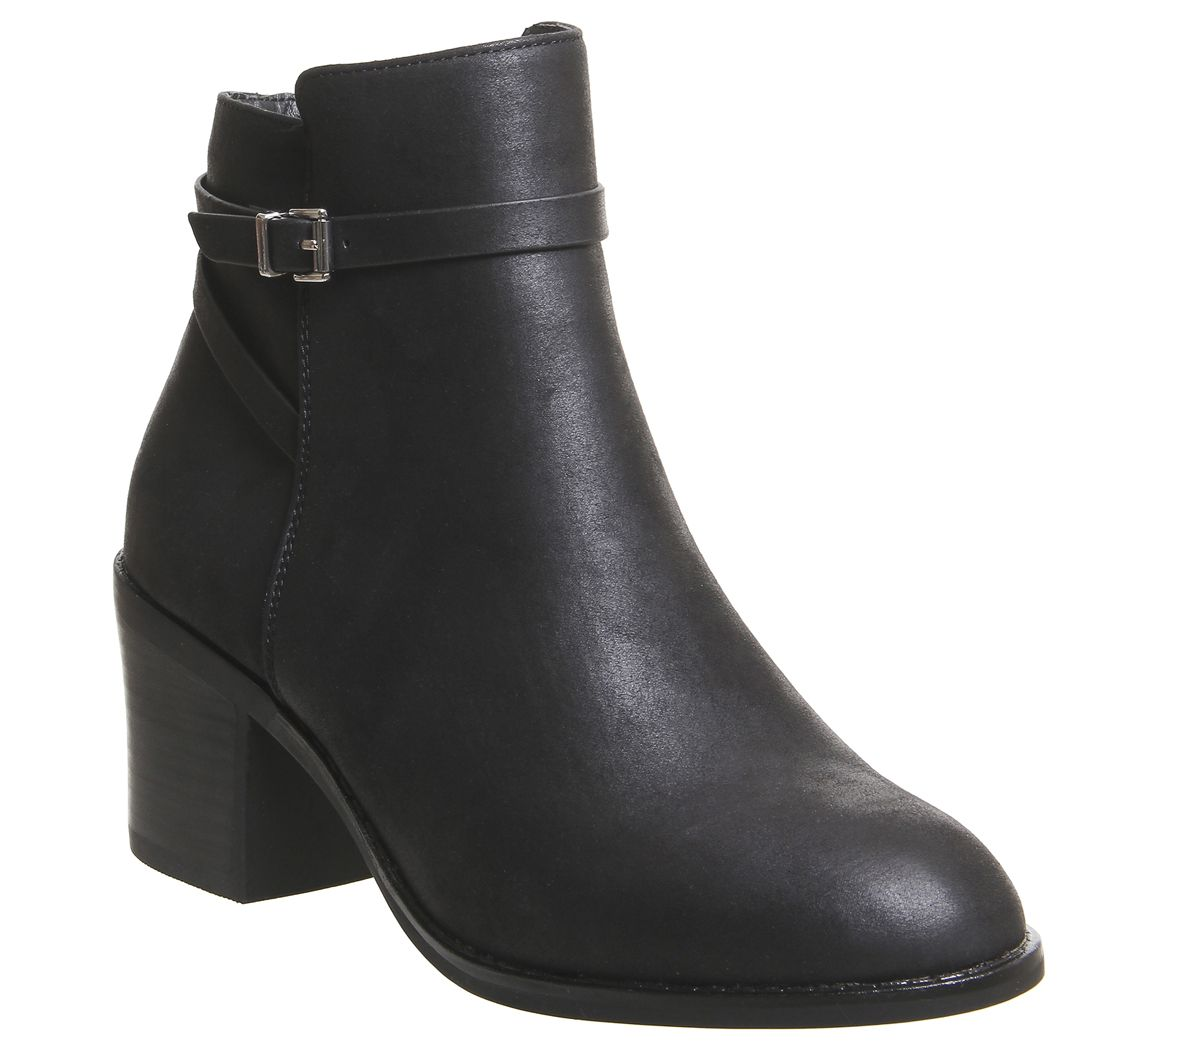 1d87df58cb040 Office Attract Ankle Strap Boots Black - Ankle Boots